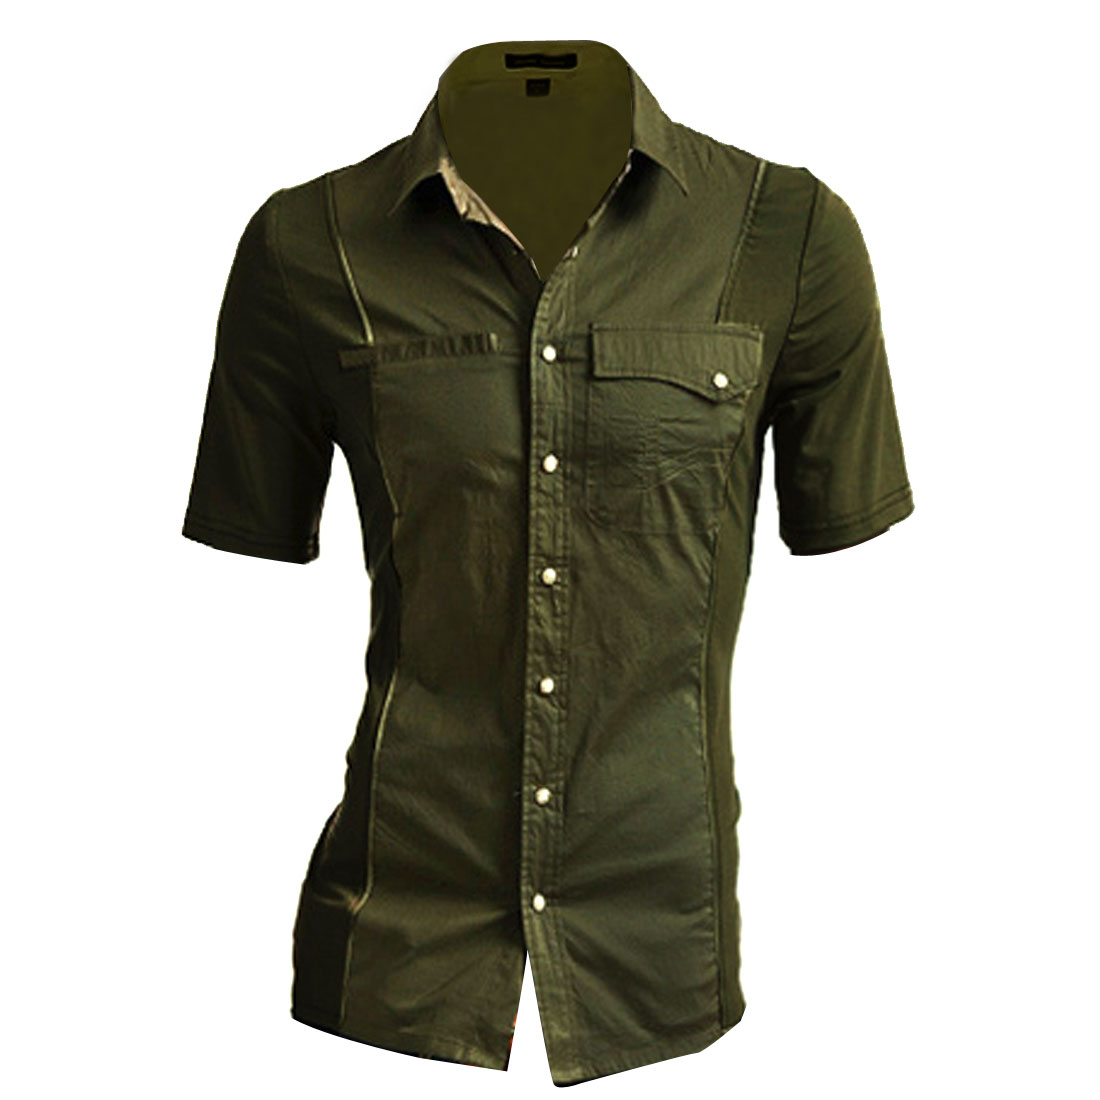 Men Point Collar Patchwork Design Short Sleeve Top Shirt S Olive Green